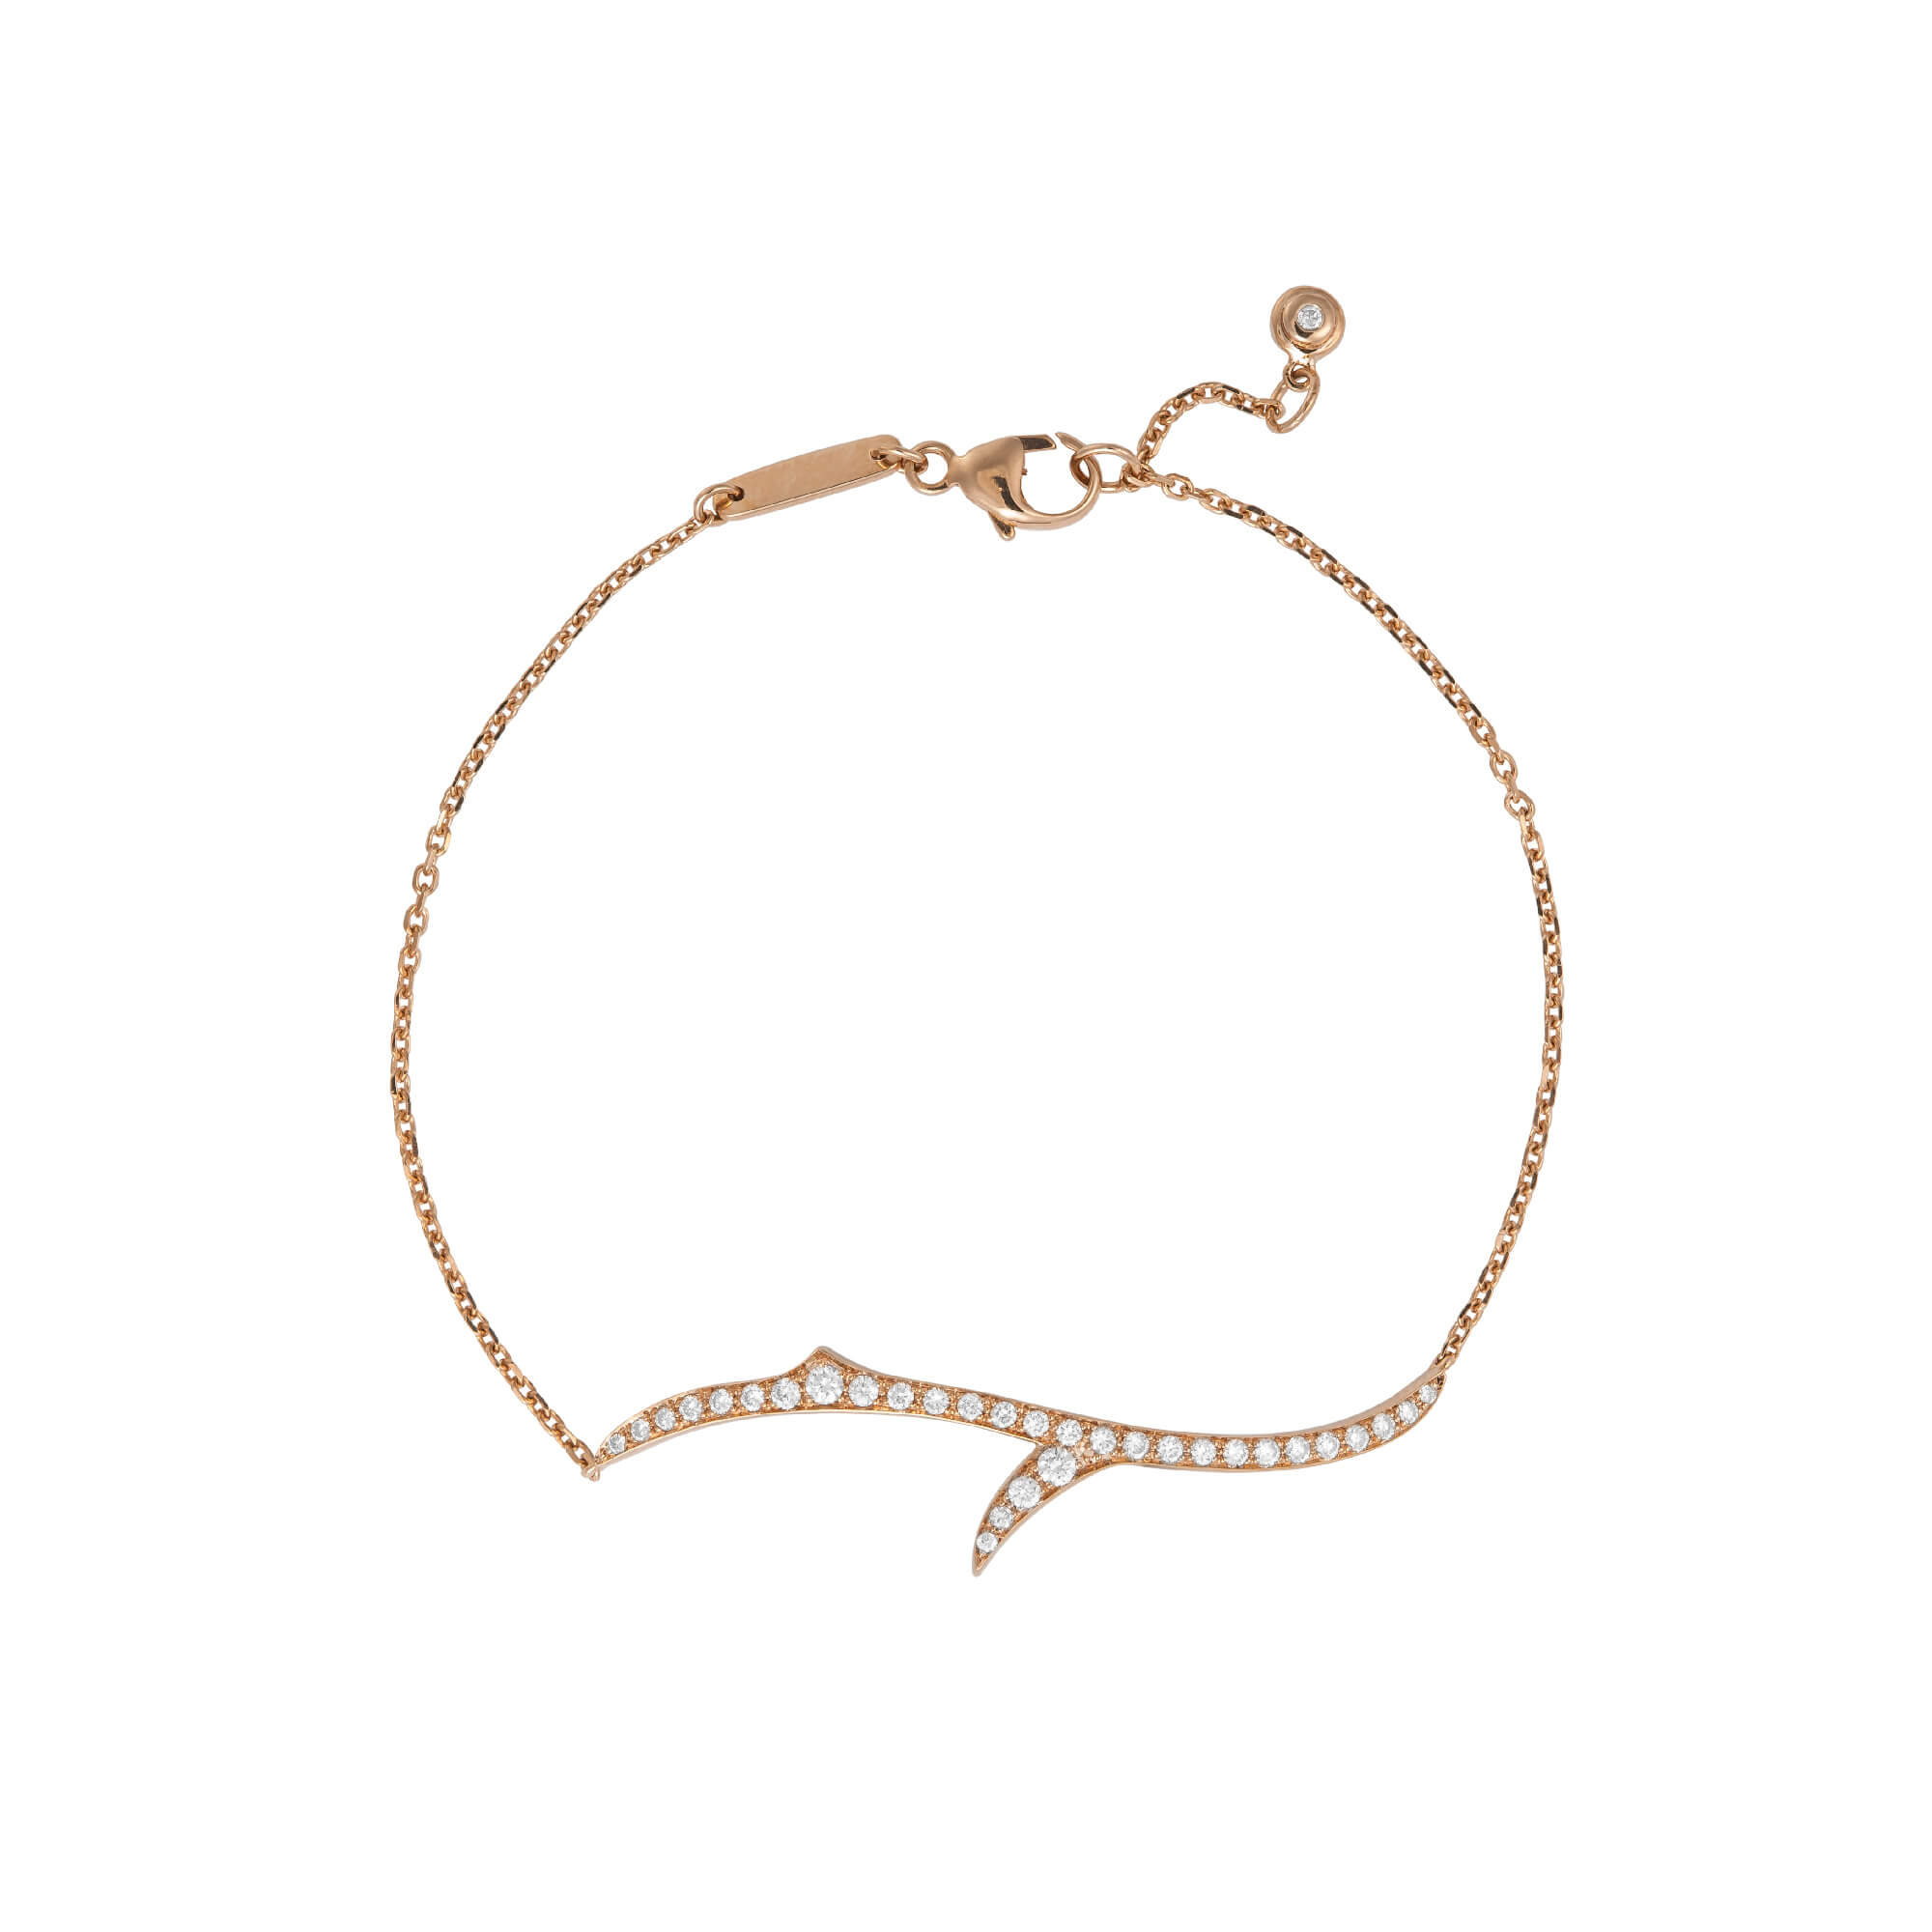 Rose Gold Stem Bracelet with White Diamond | Thorn